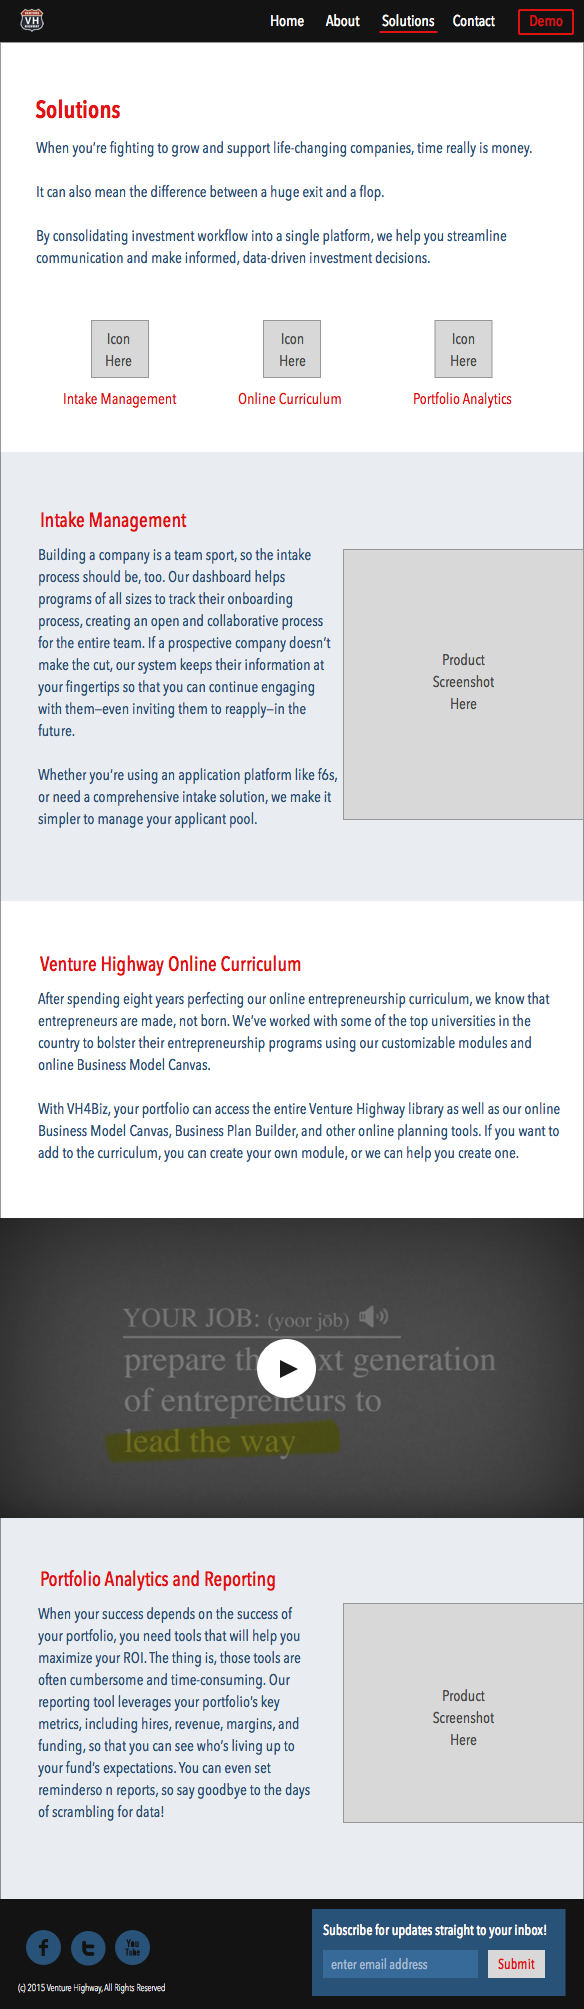 Venture Highway Web Layout_Solutions 2 08242015.png